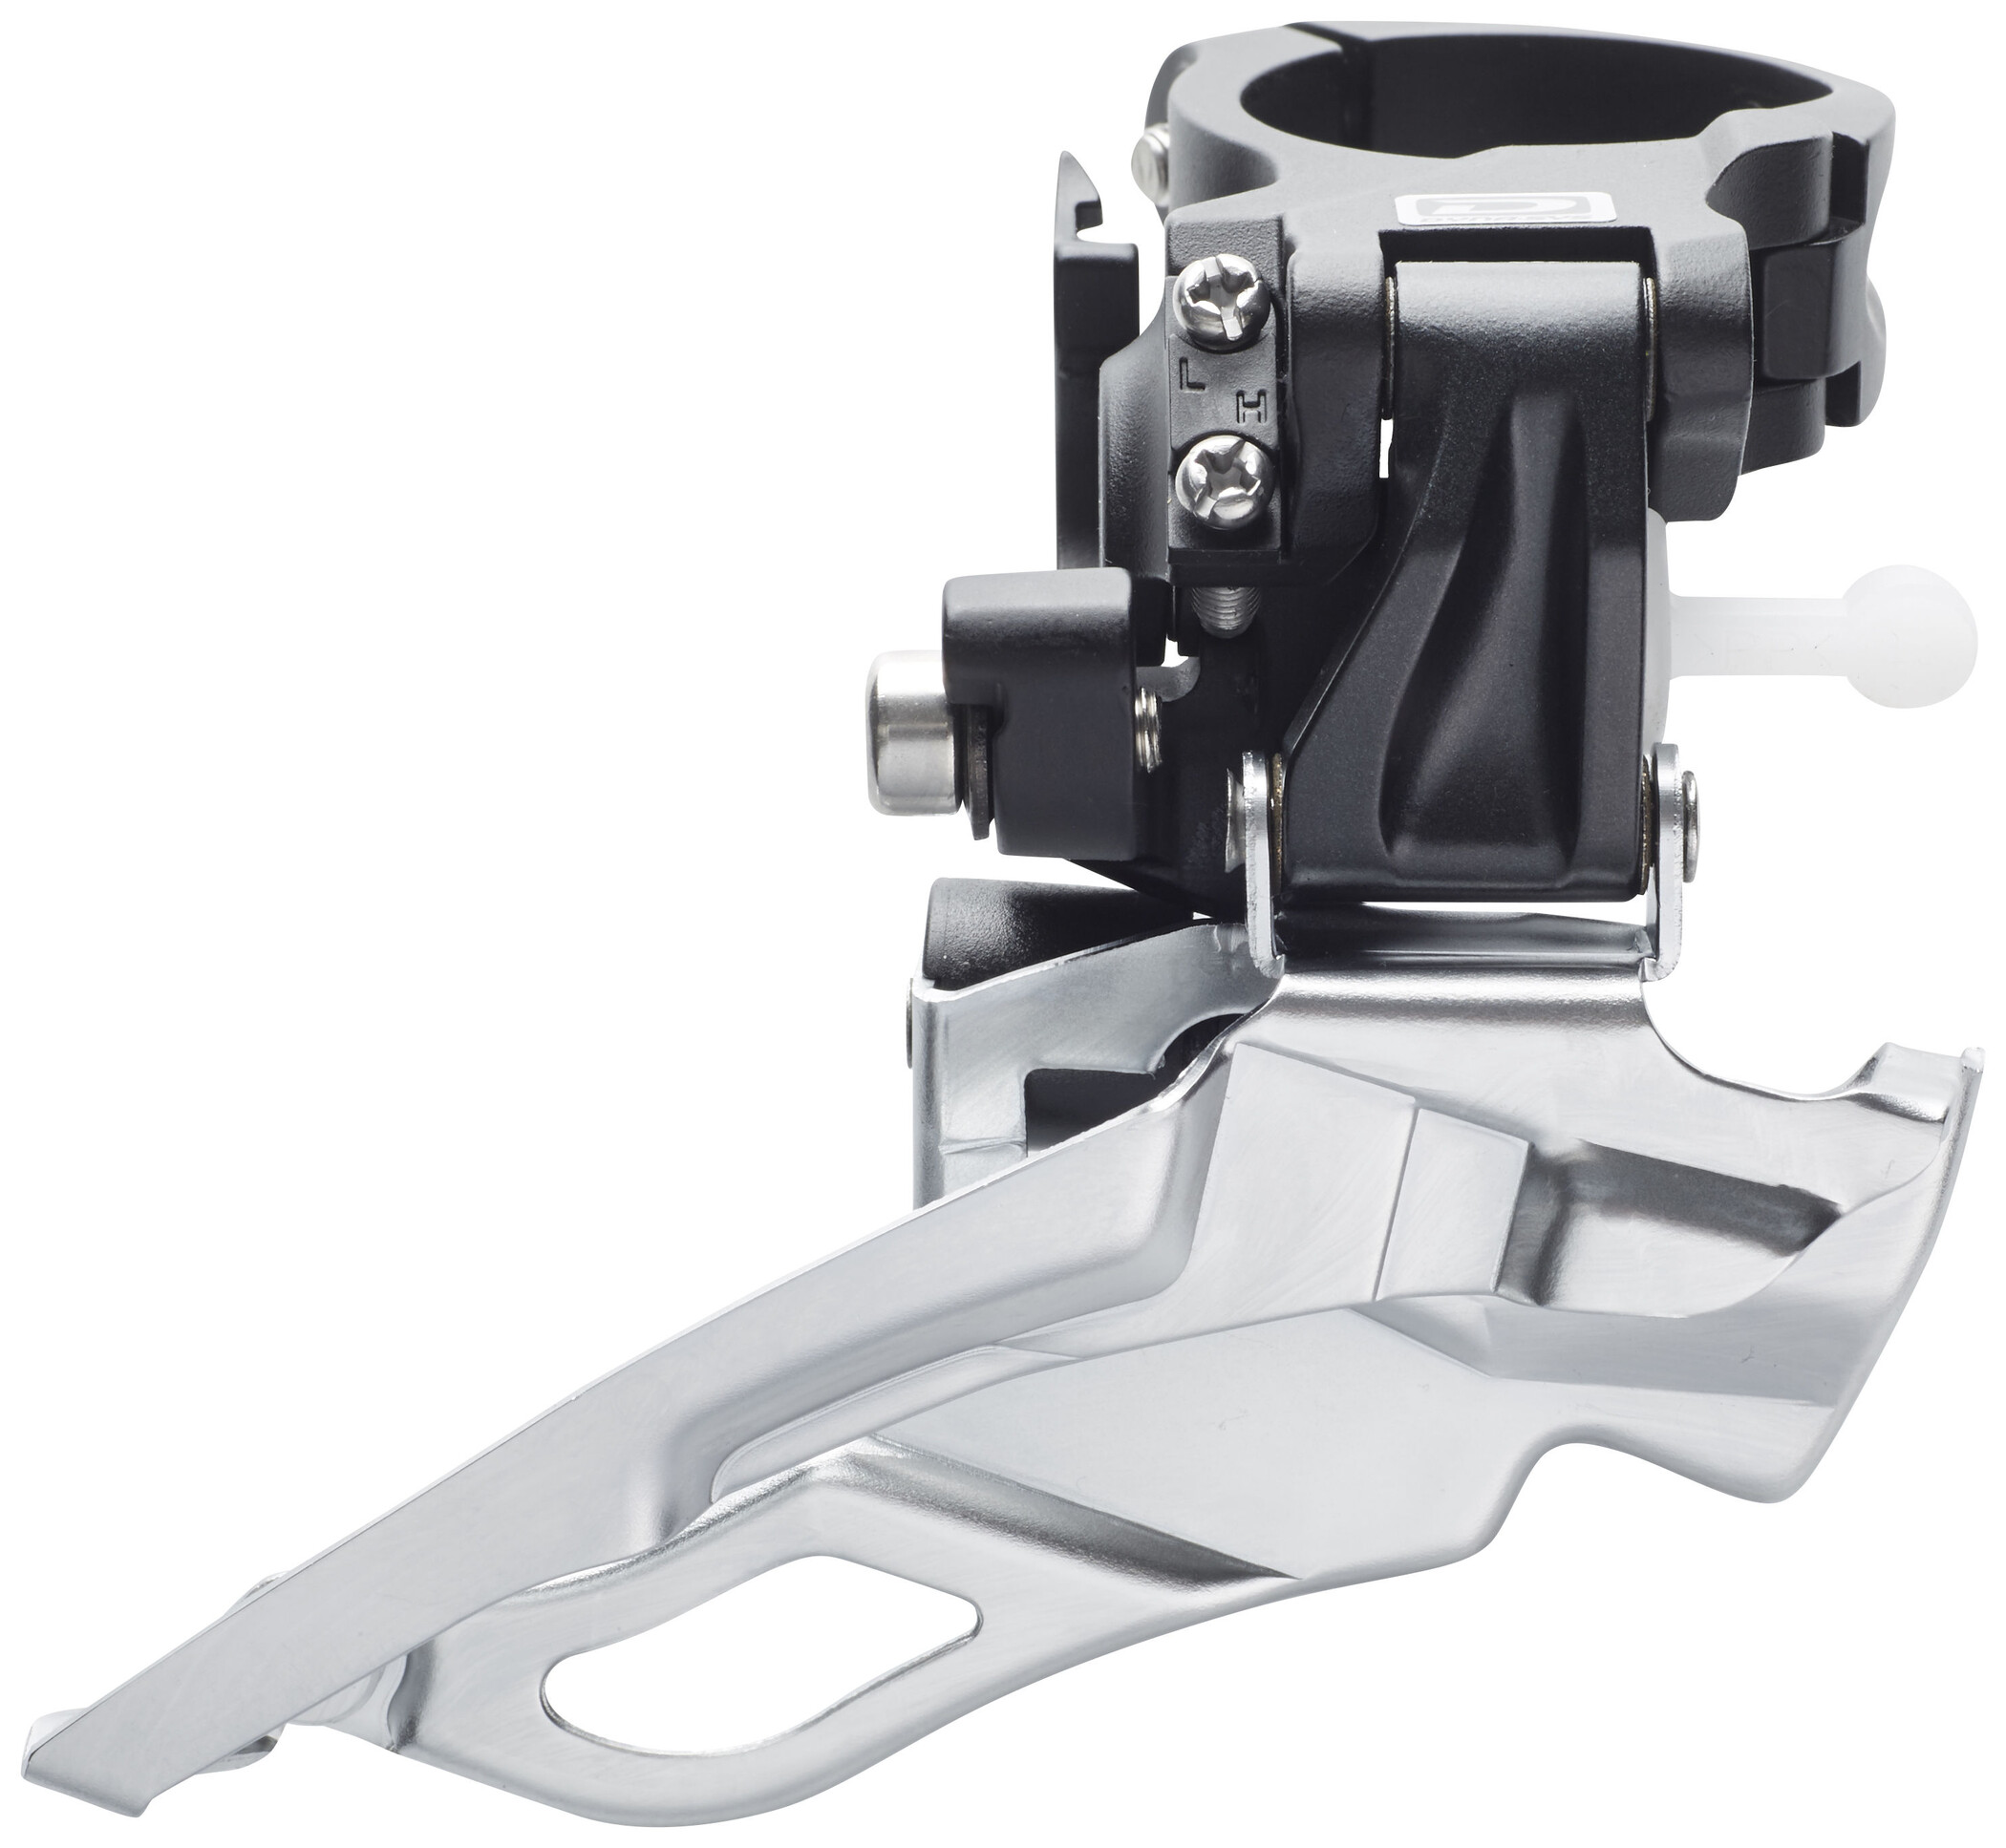 Shimano Deore FD-M611 Forskifter 3x10-speed hurtig dual-pull, black (2019) | Front derailleur